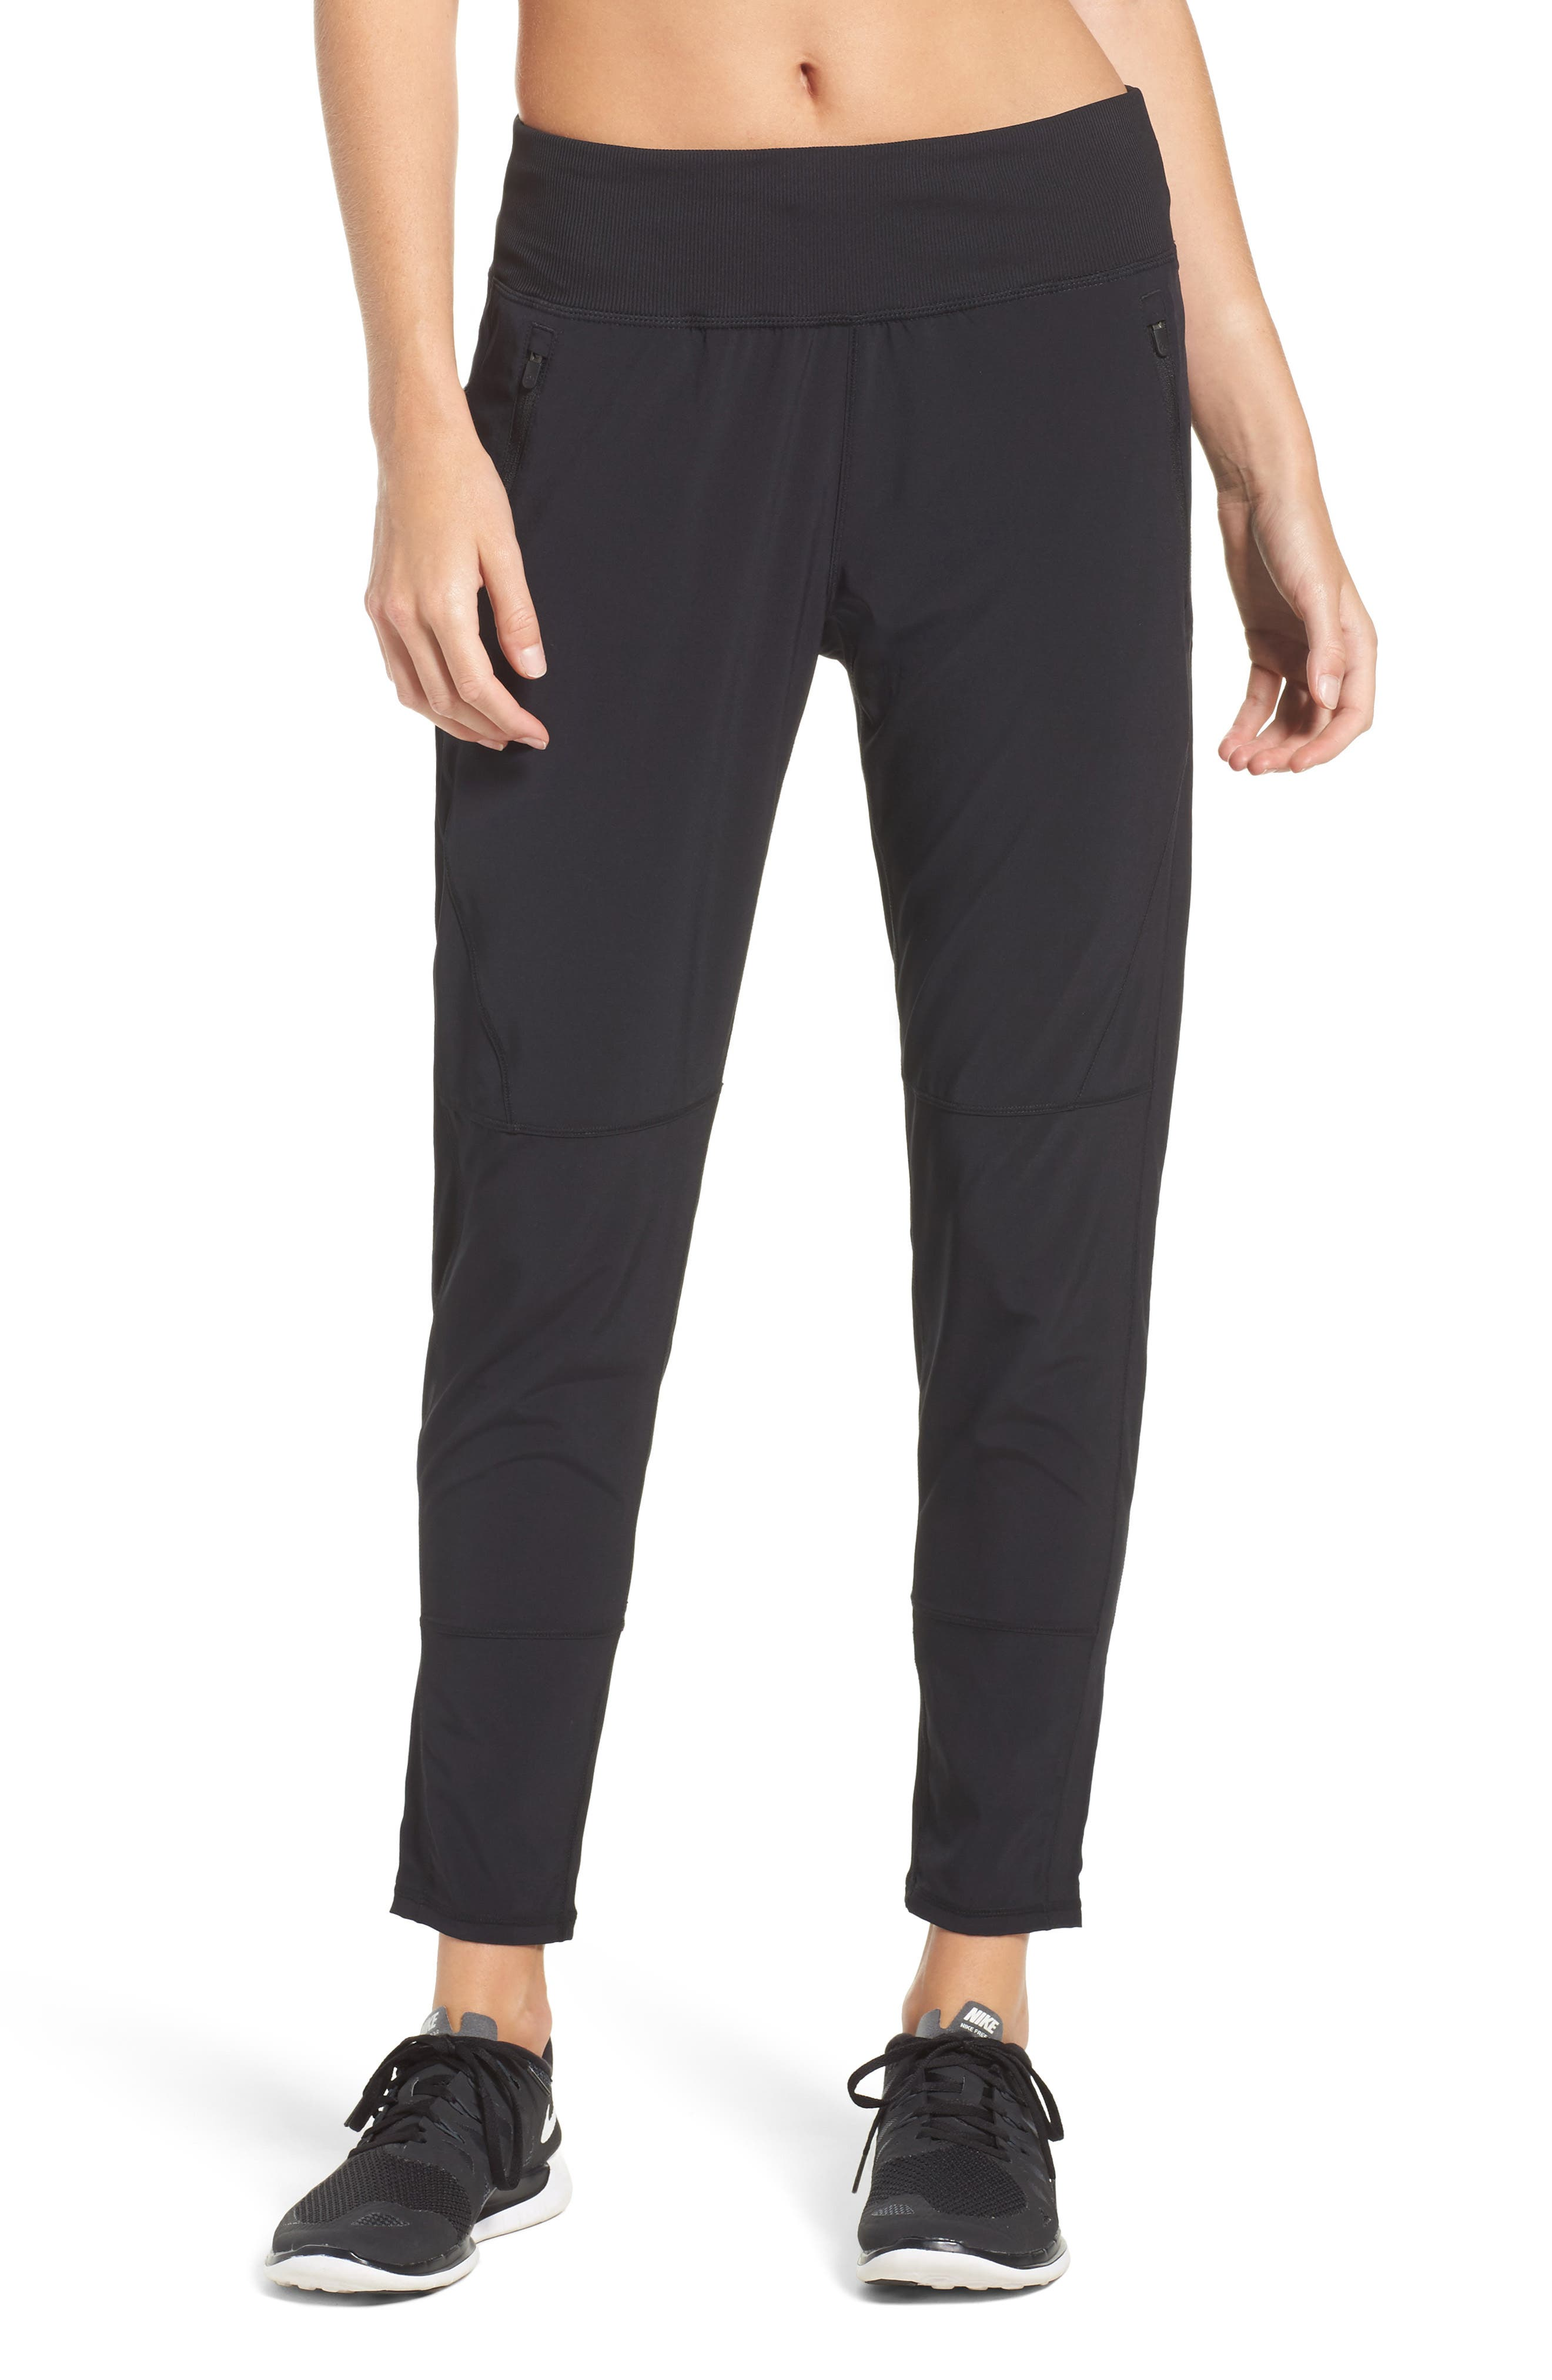 Zella Transition Ankle Pants